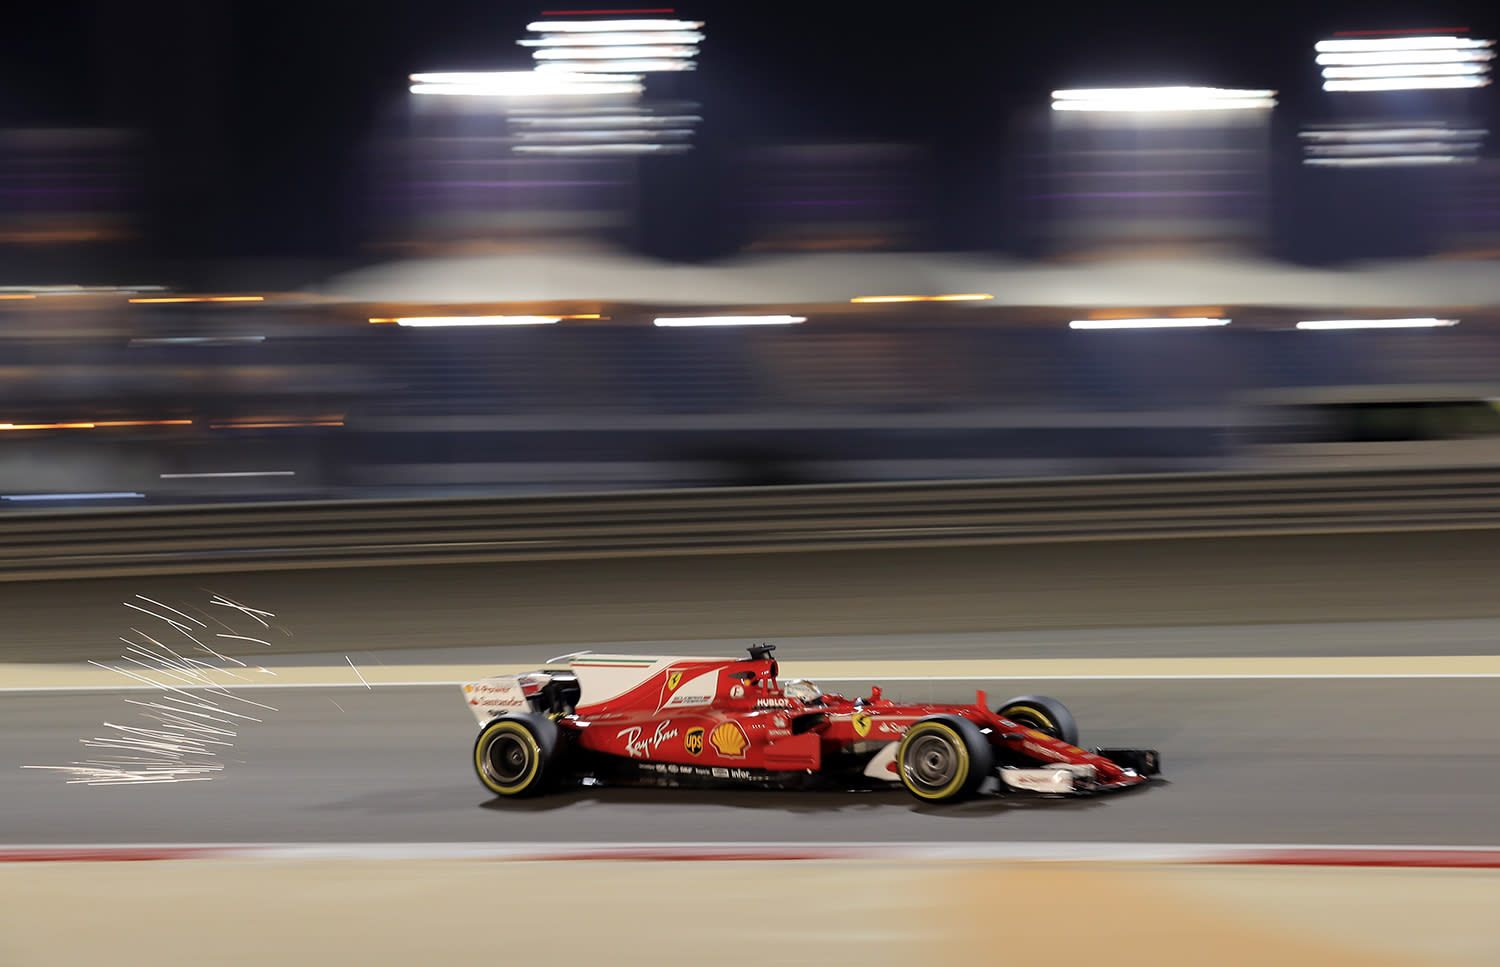 <p>Sparks fly off the car of Ferrari driver Sebastian Vettel of Germany during the second practice session for the Bahrain Formula One Grand Prix, at the Formula One Bahrain International Circuit in Sakhir, Bahrain, April 14, 2017. The Bahrain Formula One Grand Prix will take place on Sunday. (Photo: Hassan Ammar/AP) </p>